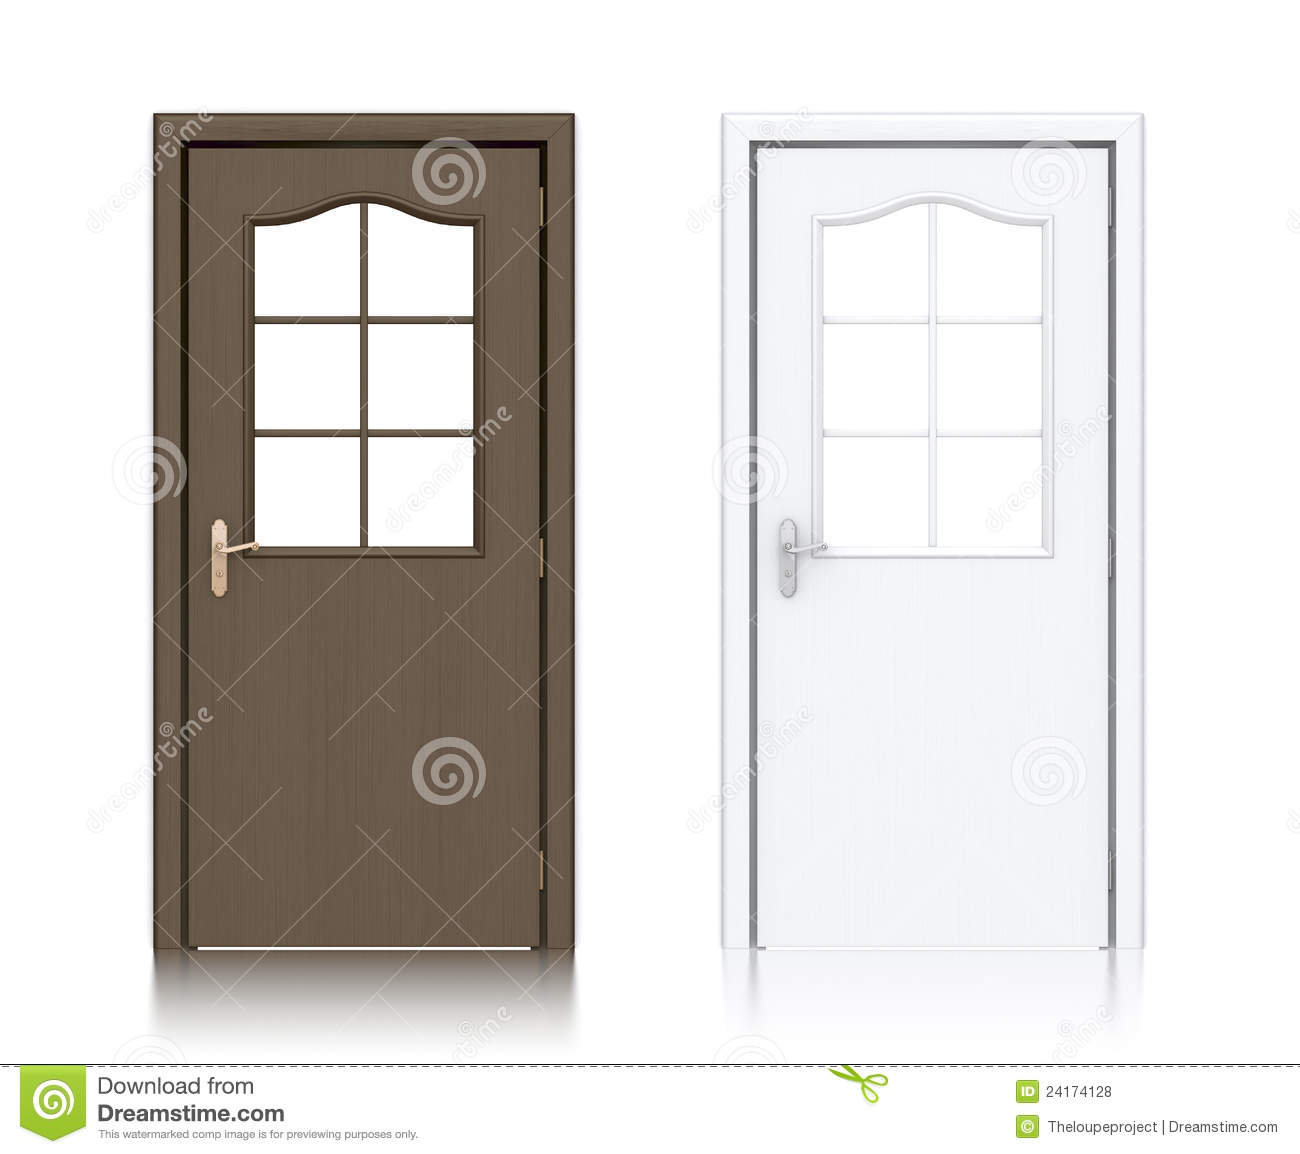 Fotos de Stock Royalty Free: Wooden dark brown and white painted doors  #85A724 1300x1154